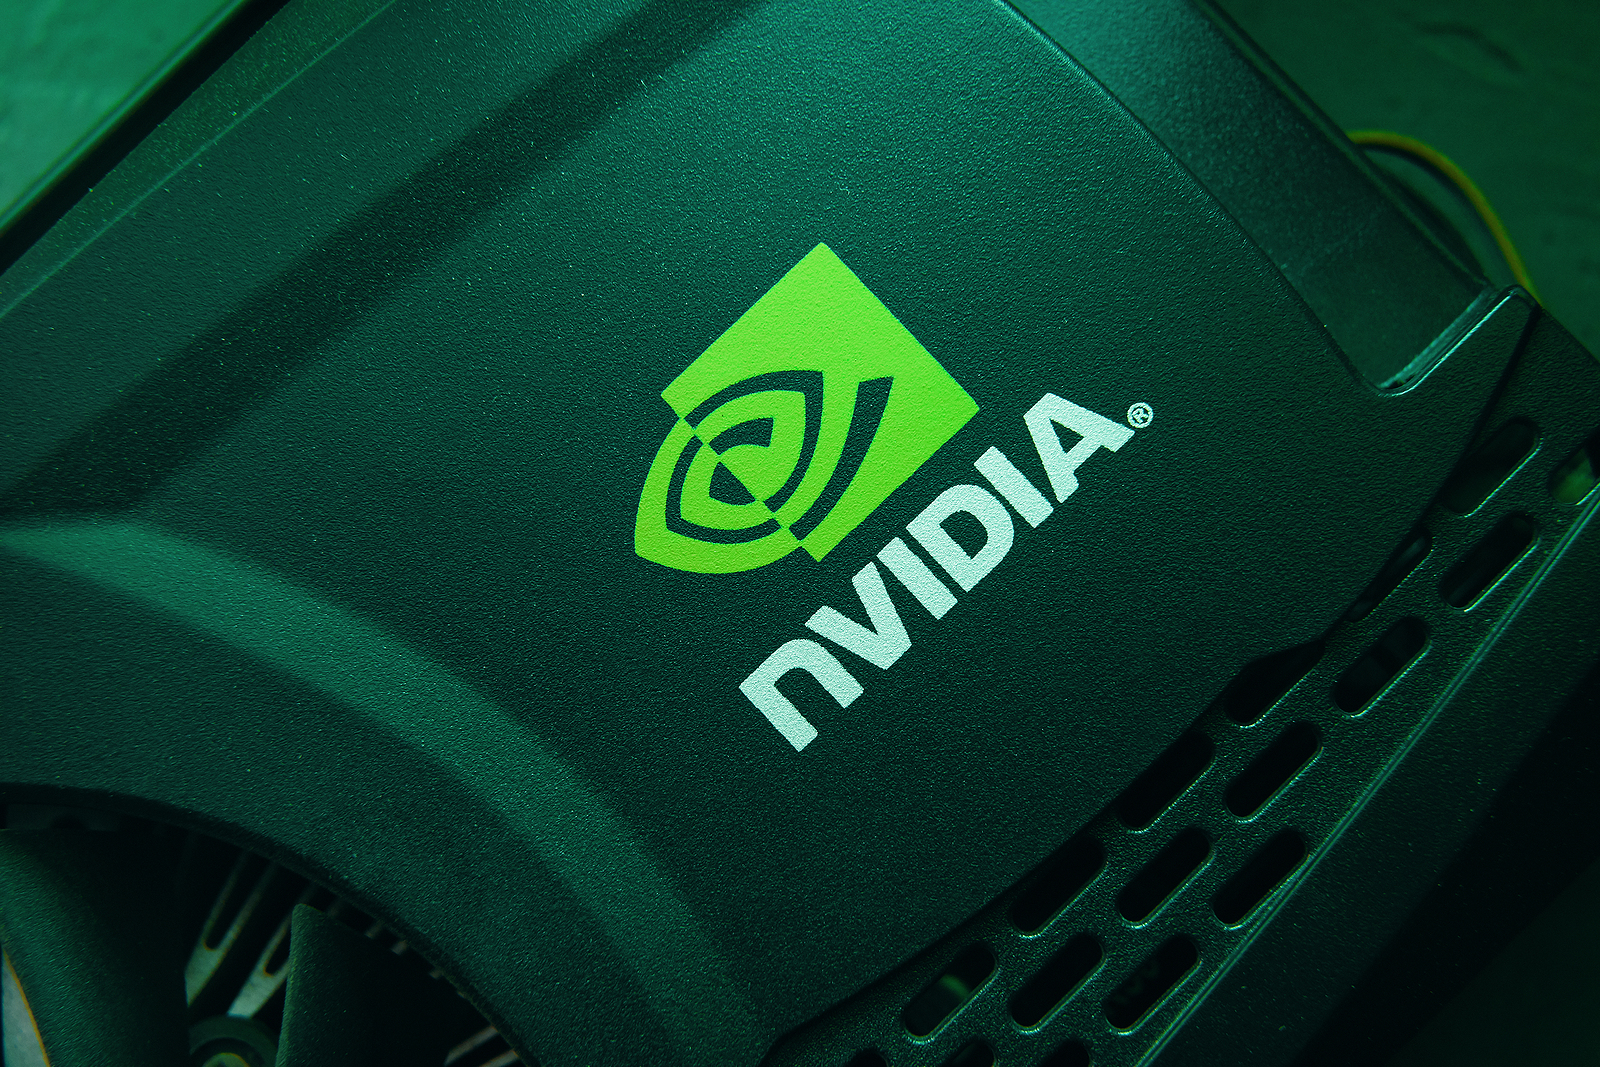 Nvidia NVDA stock news and analysis